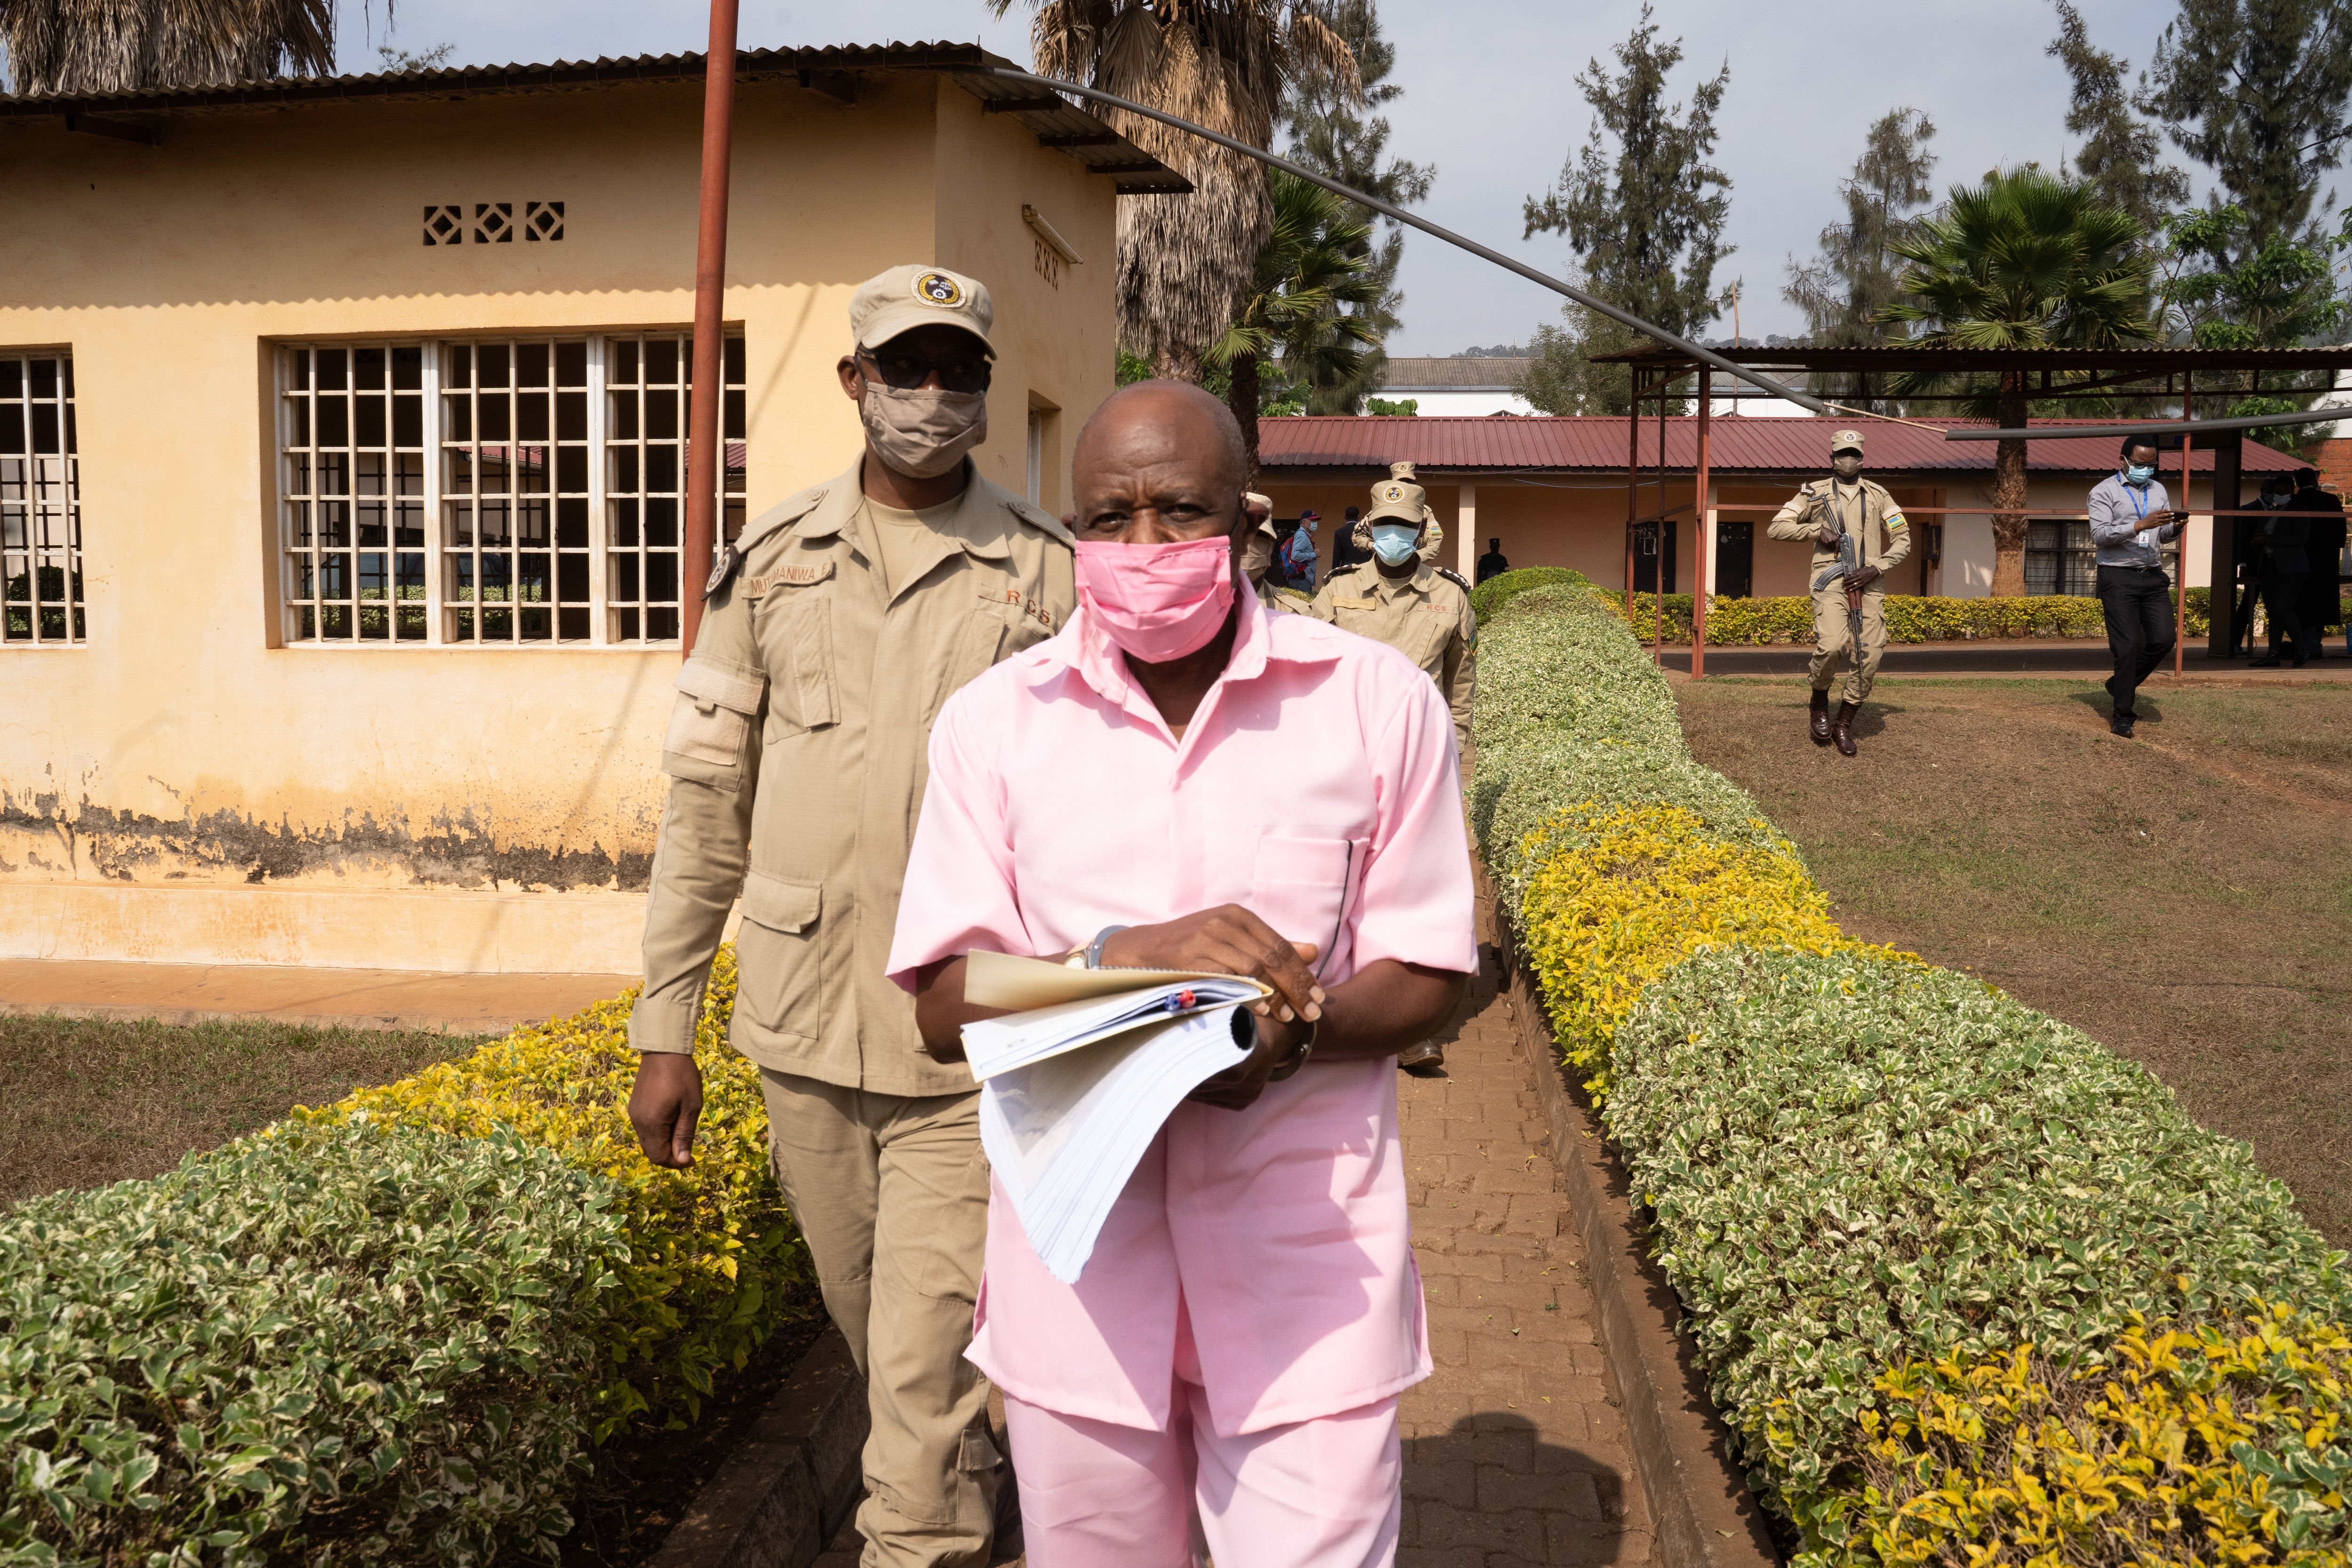 Rusesabagina arrives from the Nyarugenge prison with Rwanda Correctional Service officers at the Nyarugenge Court of Justice in Kigali on Sept. 25, 2020.